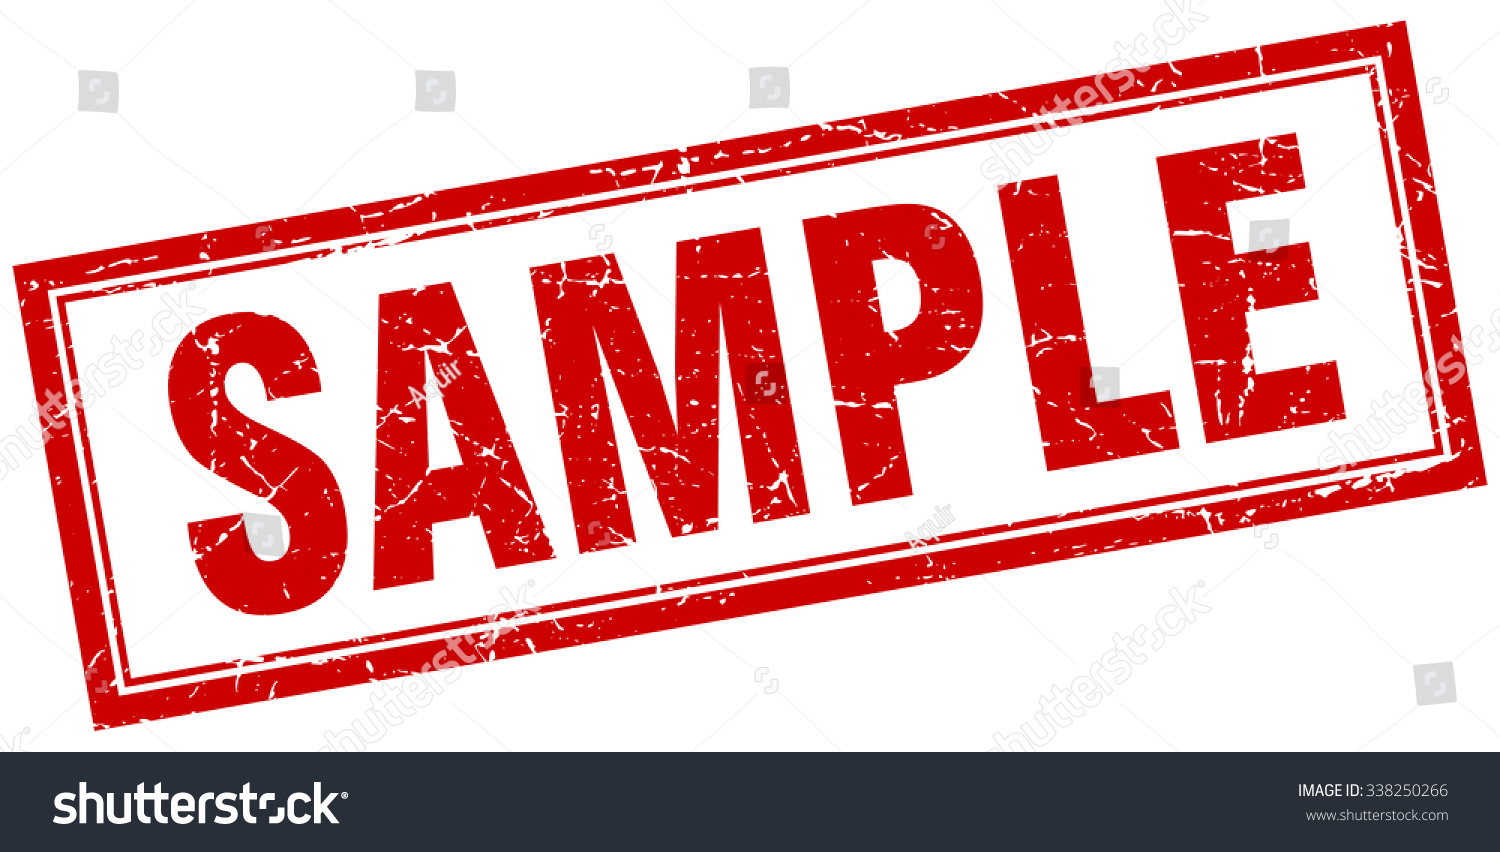 Http Www Shutterstock Com Pic 338250266 Stock Vector Sample Red Square Grunge Stamp On White Sample Stamp Sample Sample Sign Html